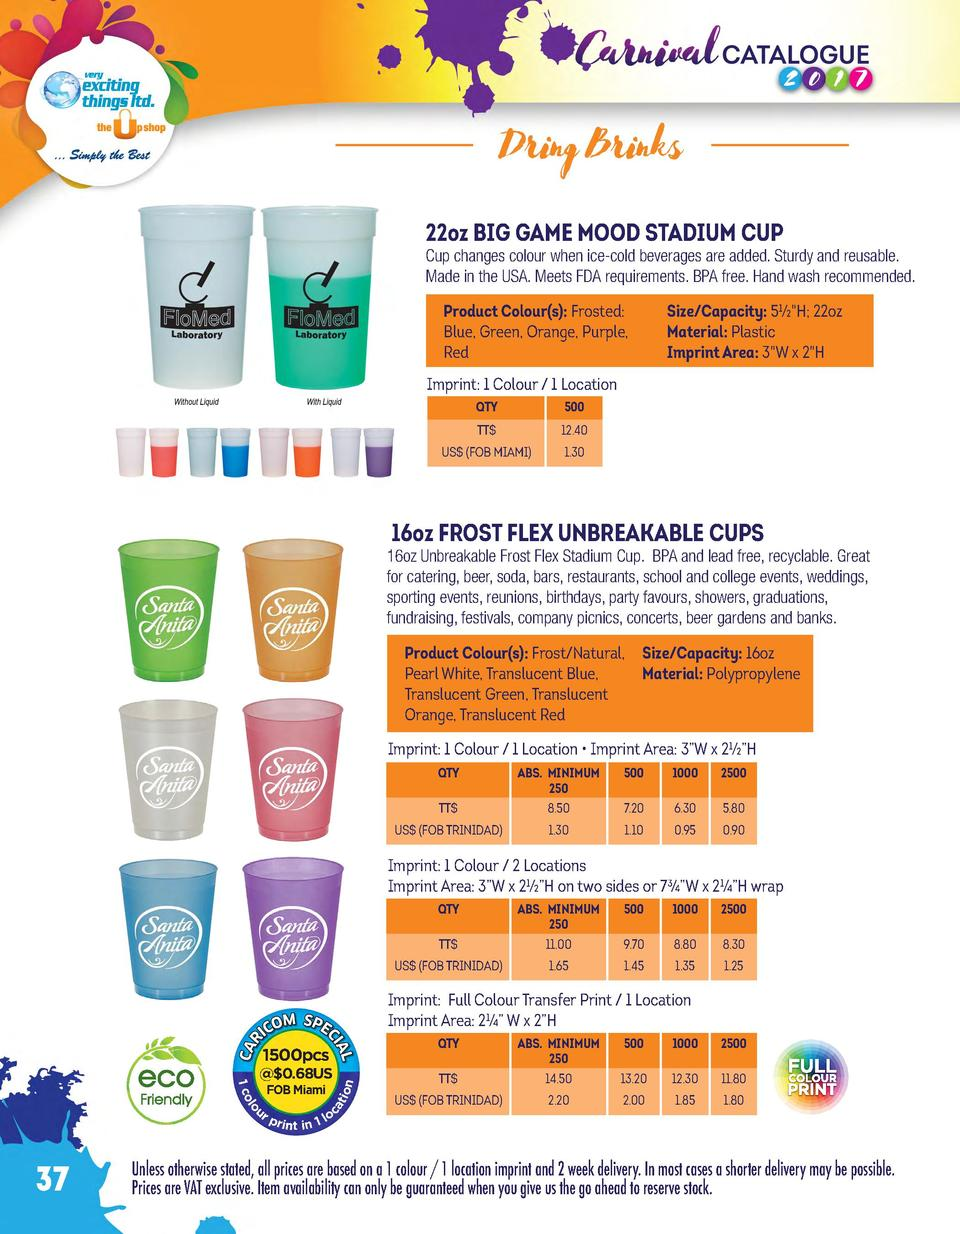 Dring Brinks 22oz BIG GAME MOOD STADIUM CUP  Cup changes colour when ice-cold beverages are added. Sturdy and reusable. Ma...